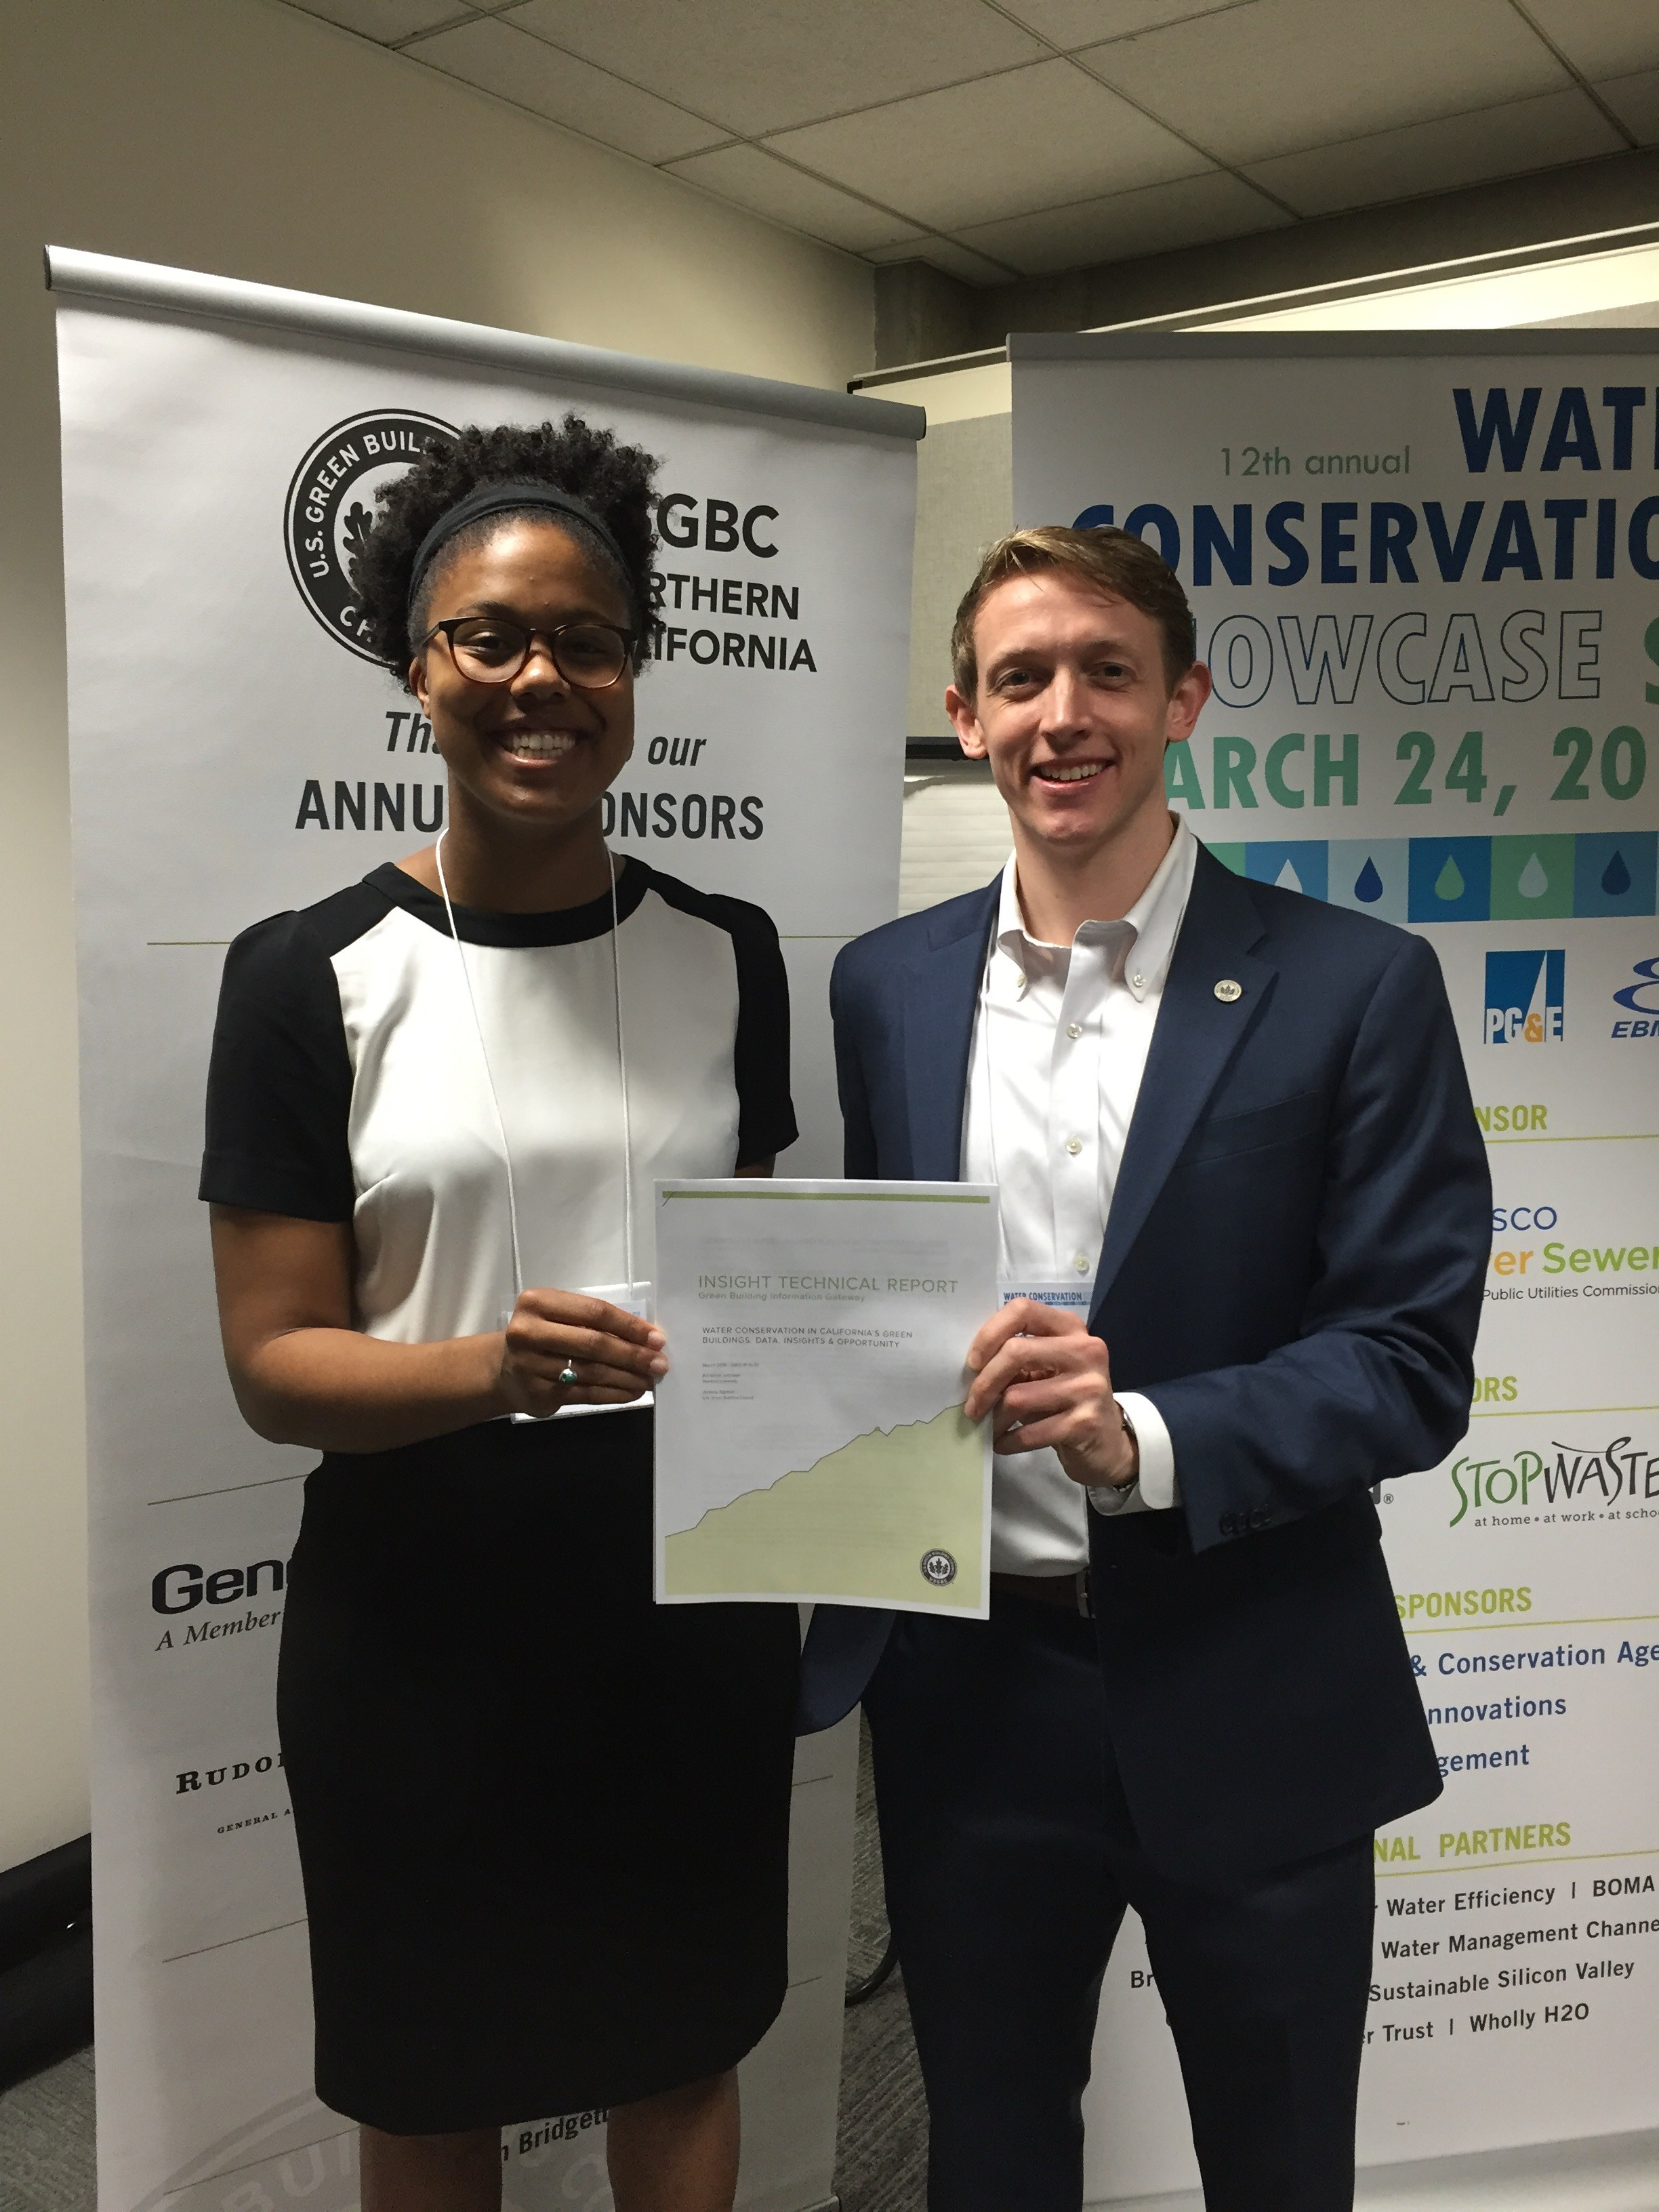 At the 12th Annual Water Conservation Showcase in San Francisco, Jeremy Sigmon (USGBC) and Adrienne Johnson (Stanford U.) presented findings from the newly-released GBIG Insight technical report.